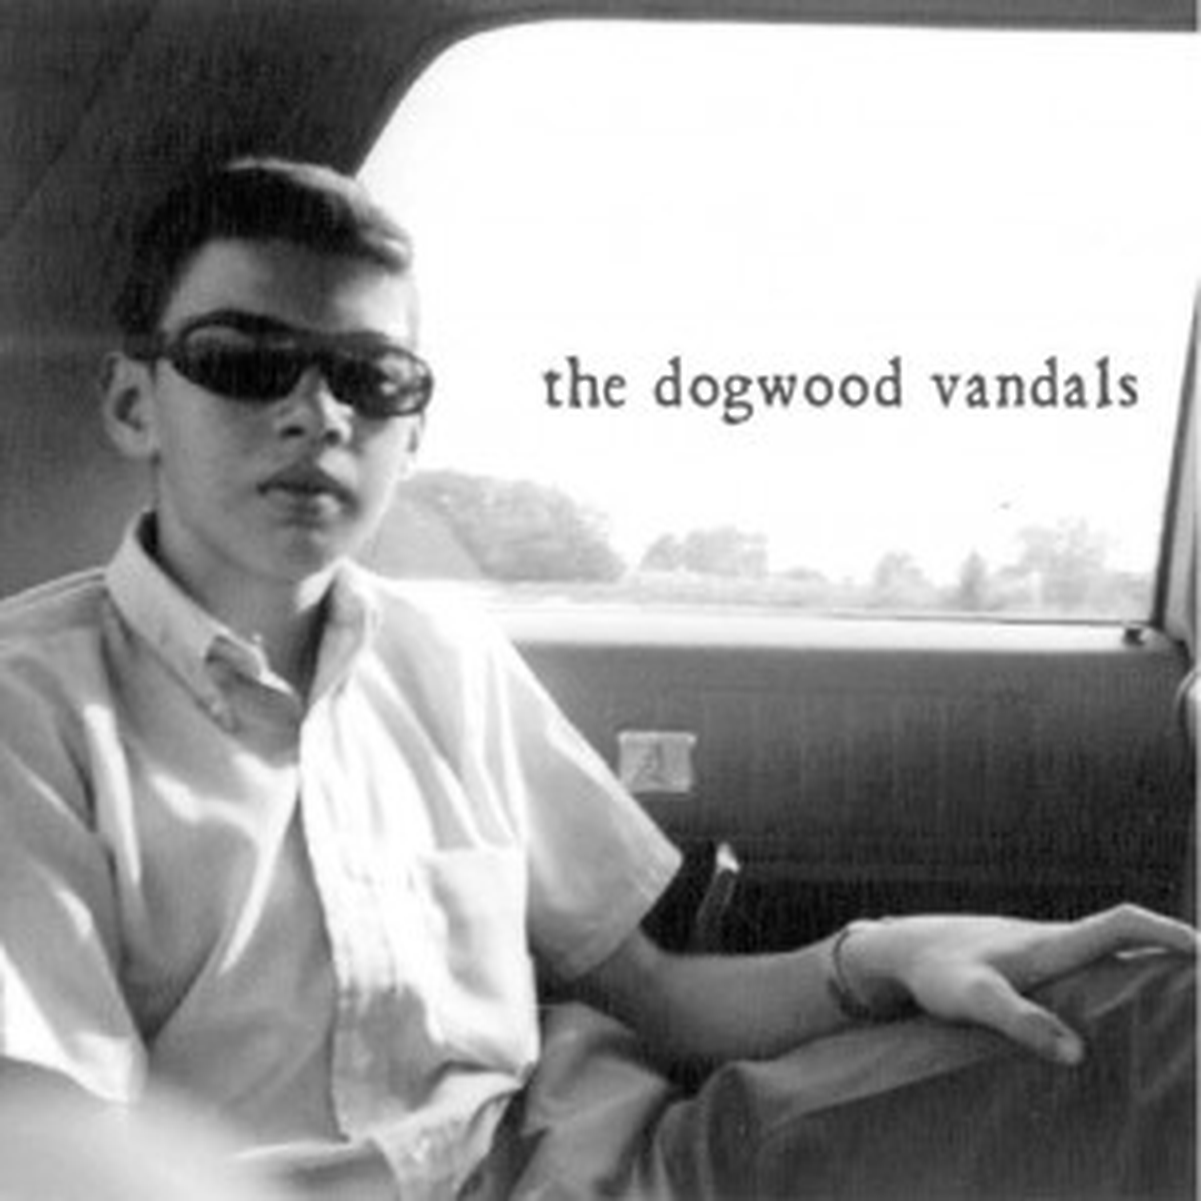 The Dogwood Vandals